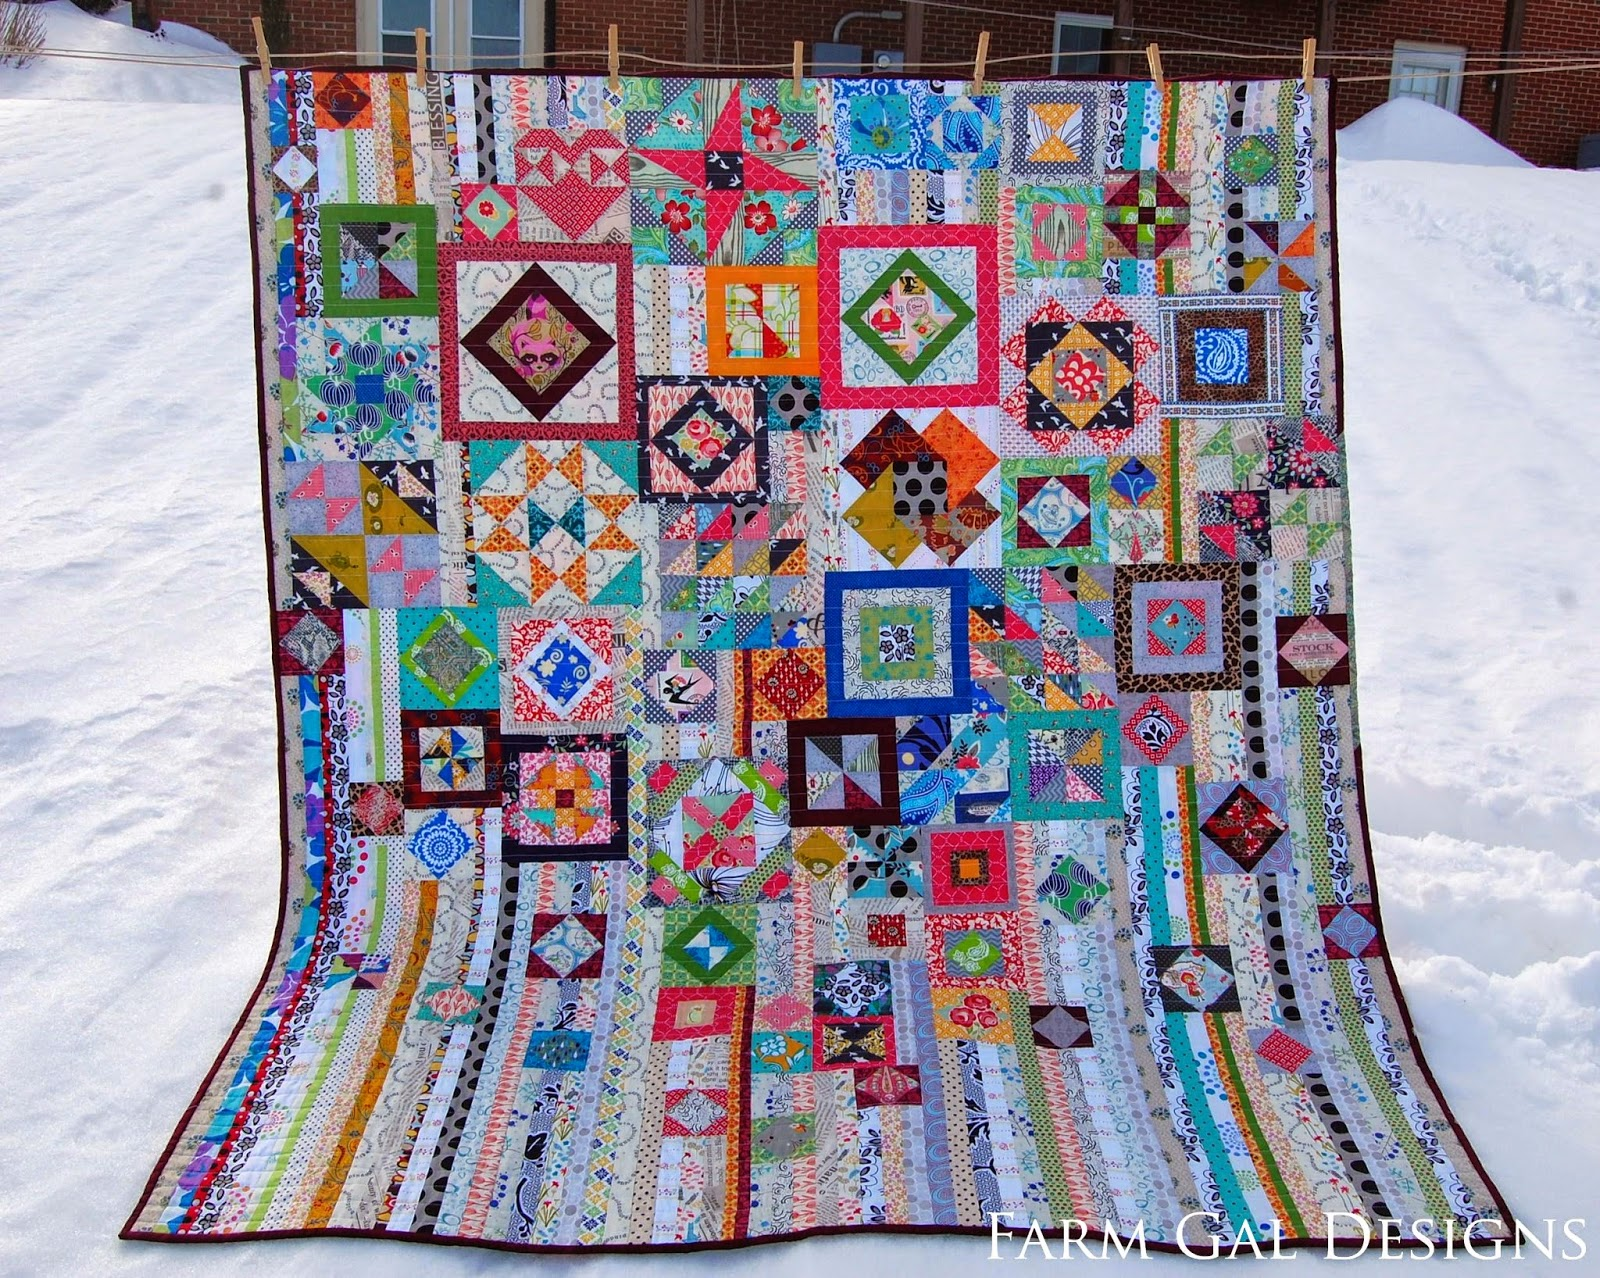 Farm Gal Designs Completed Gypsy Wife Quilt